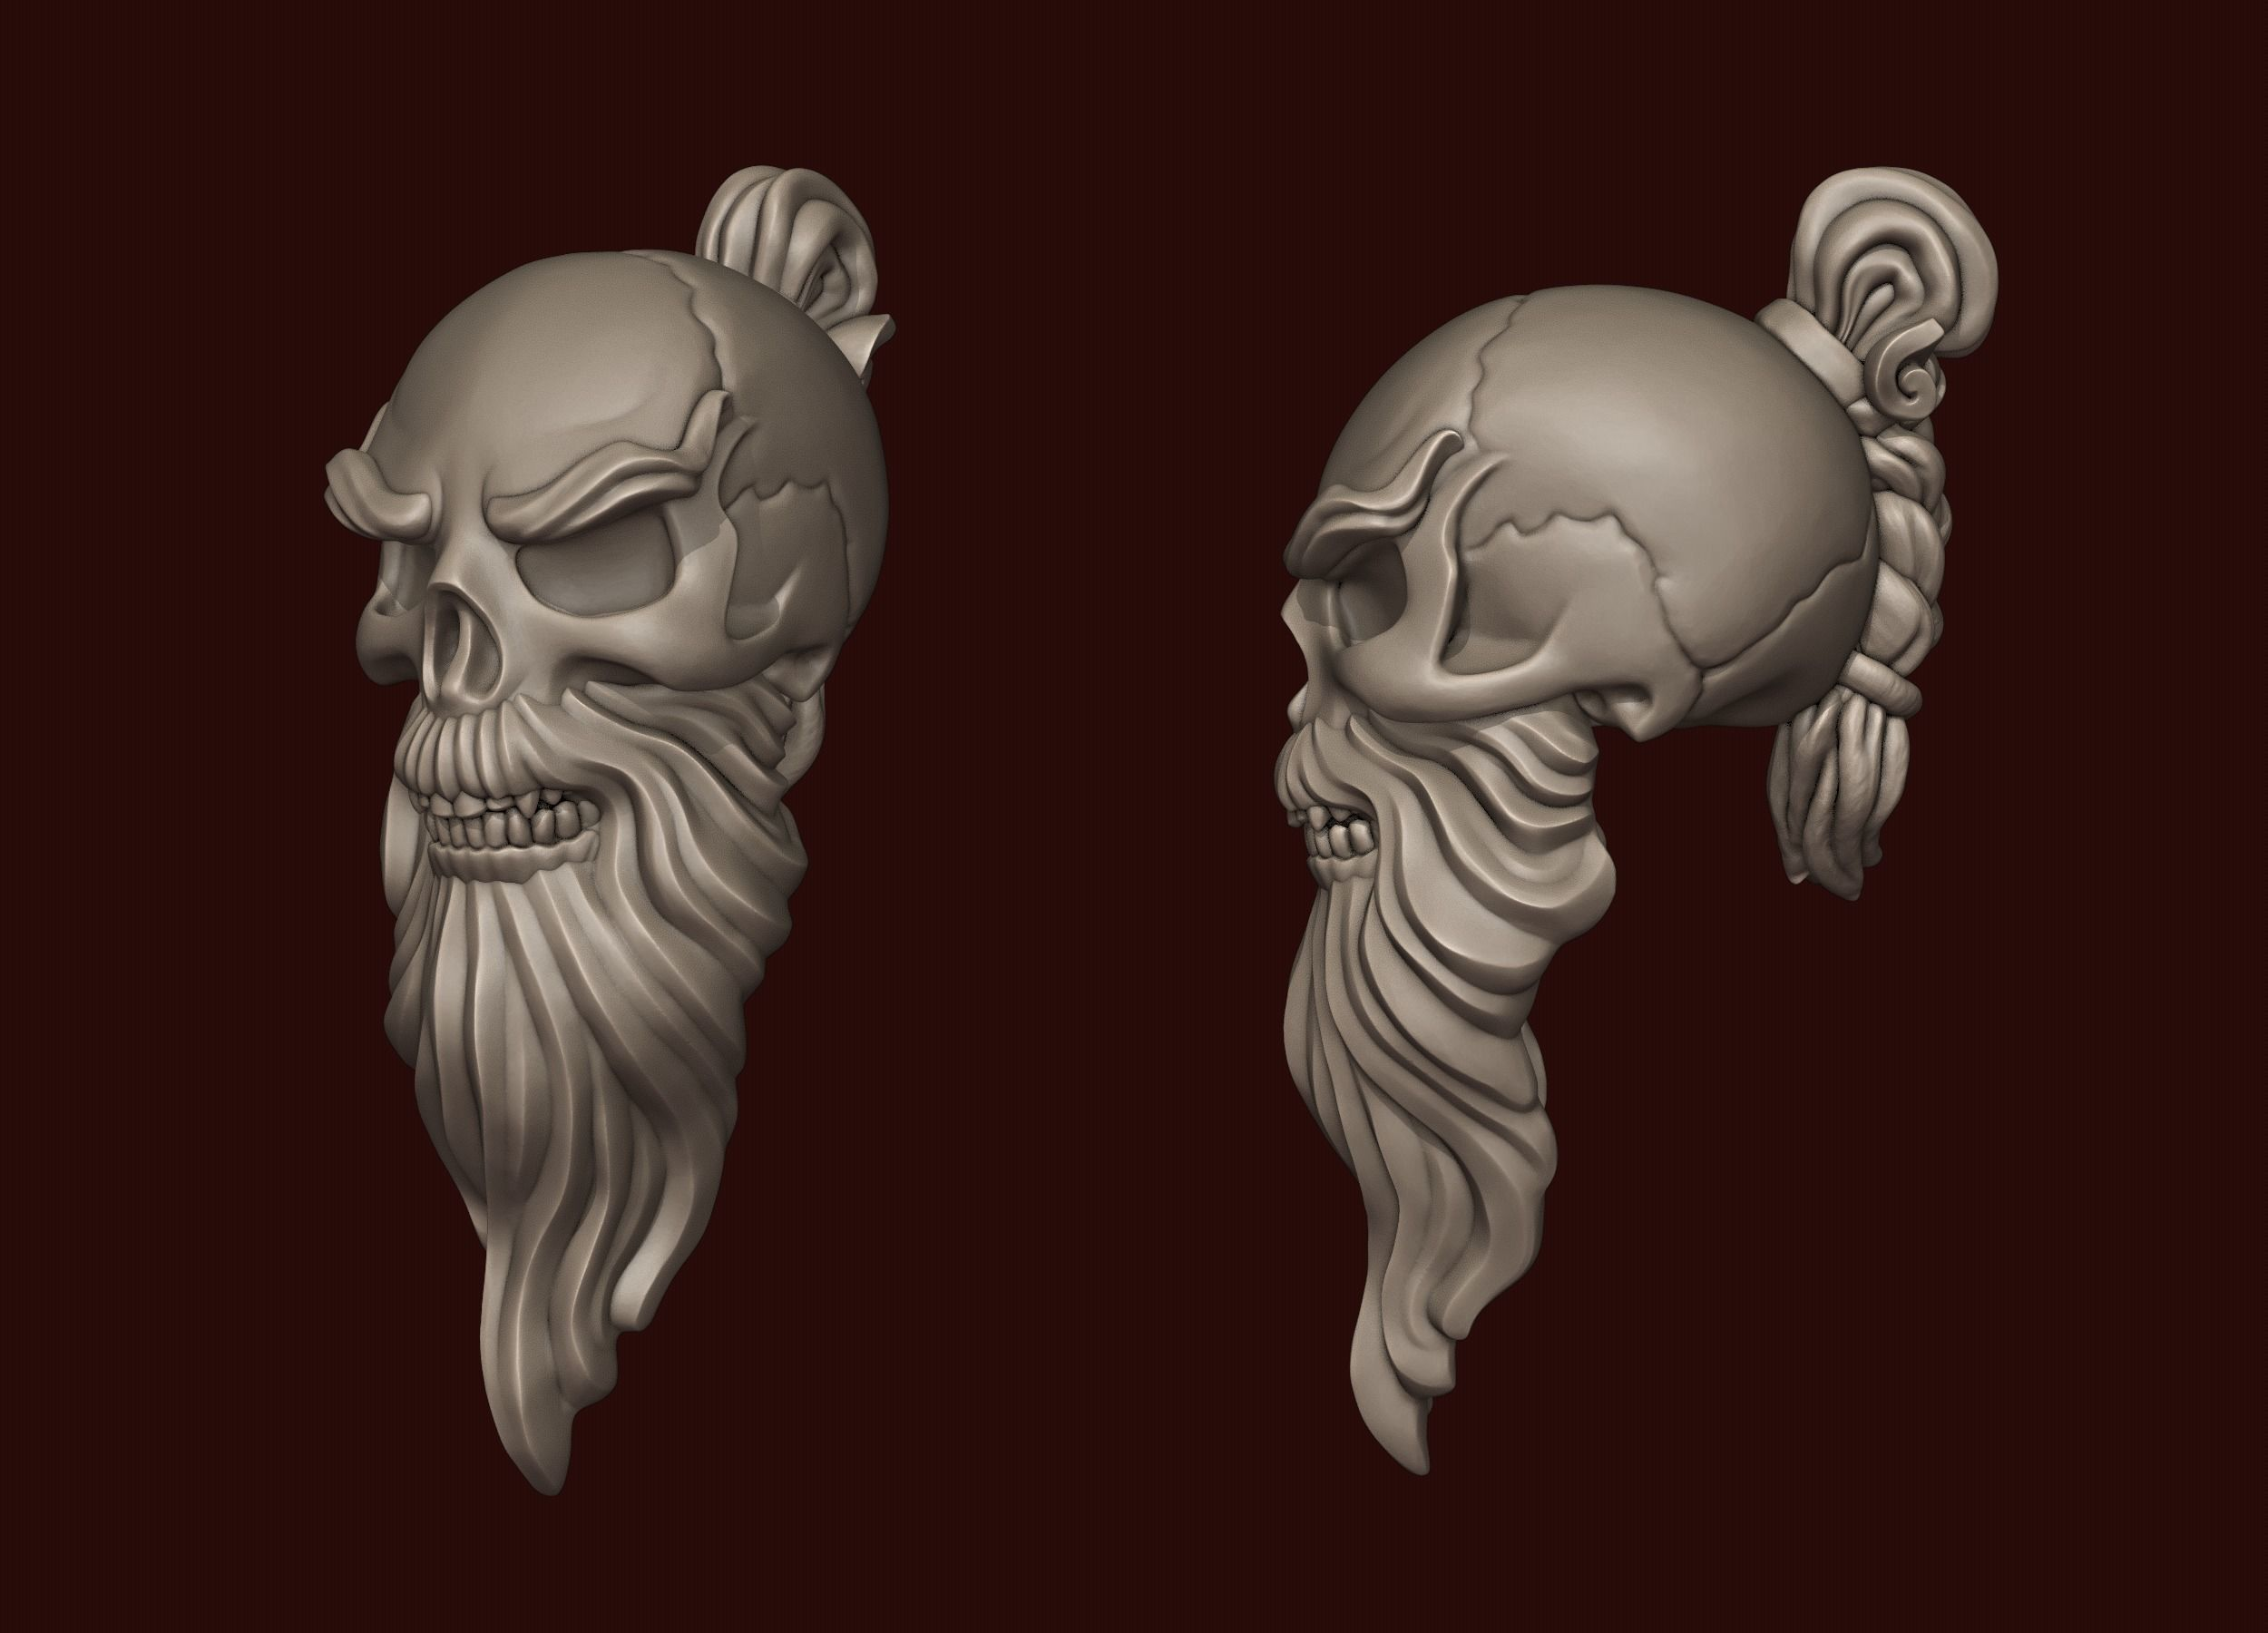 Skull Sensei with a beard and a pigtail